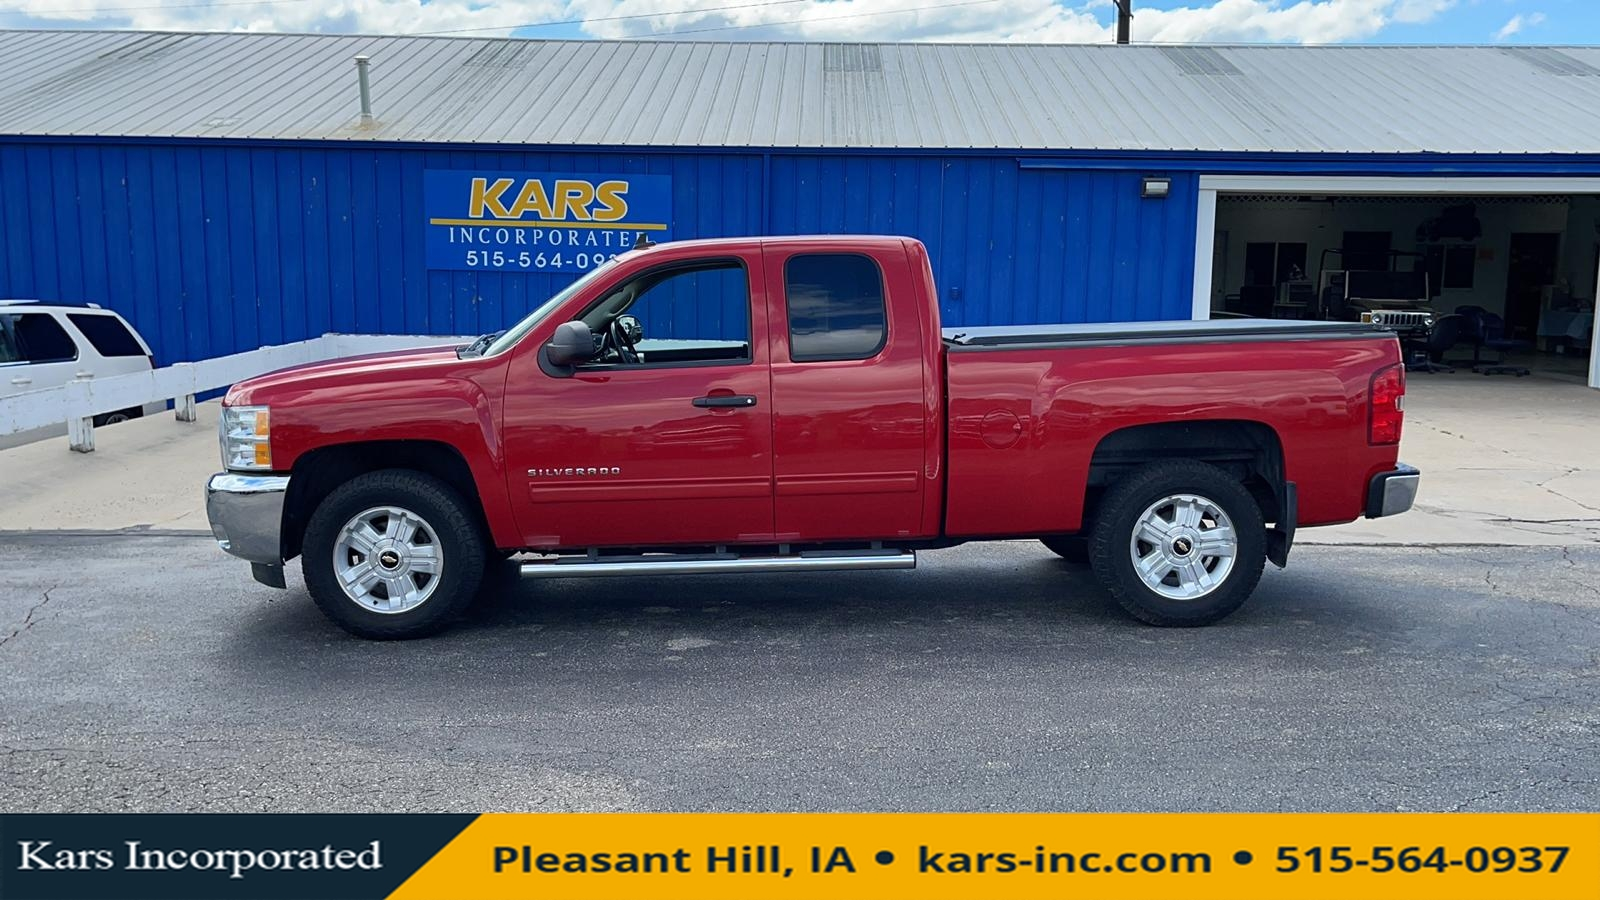 2012 Chevrolet Silverado 1500 LT 4WD Extended Cab  - C75559P  - Kars Incorporated